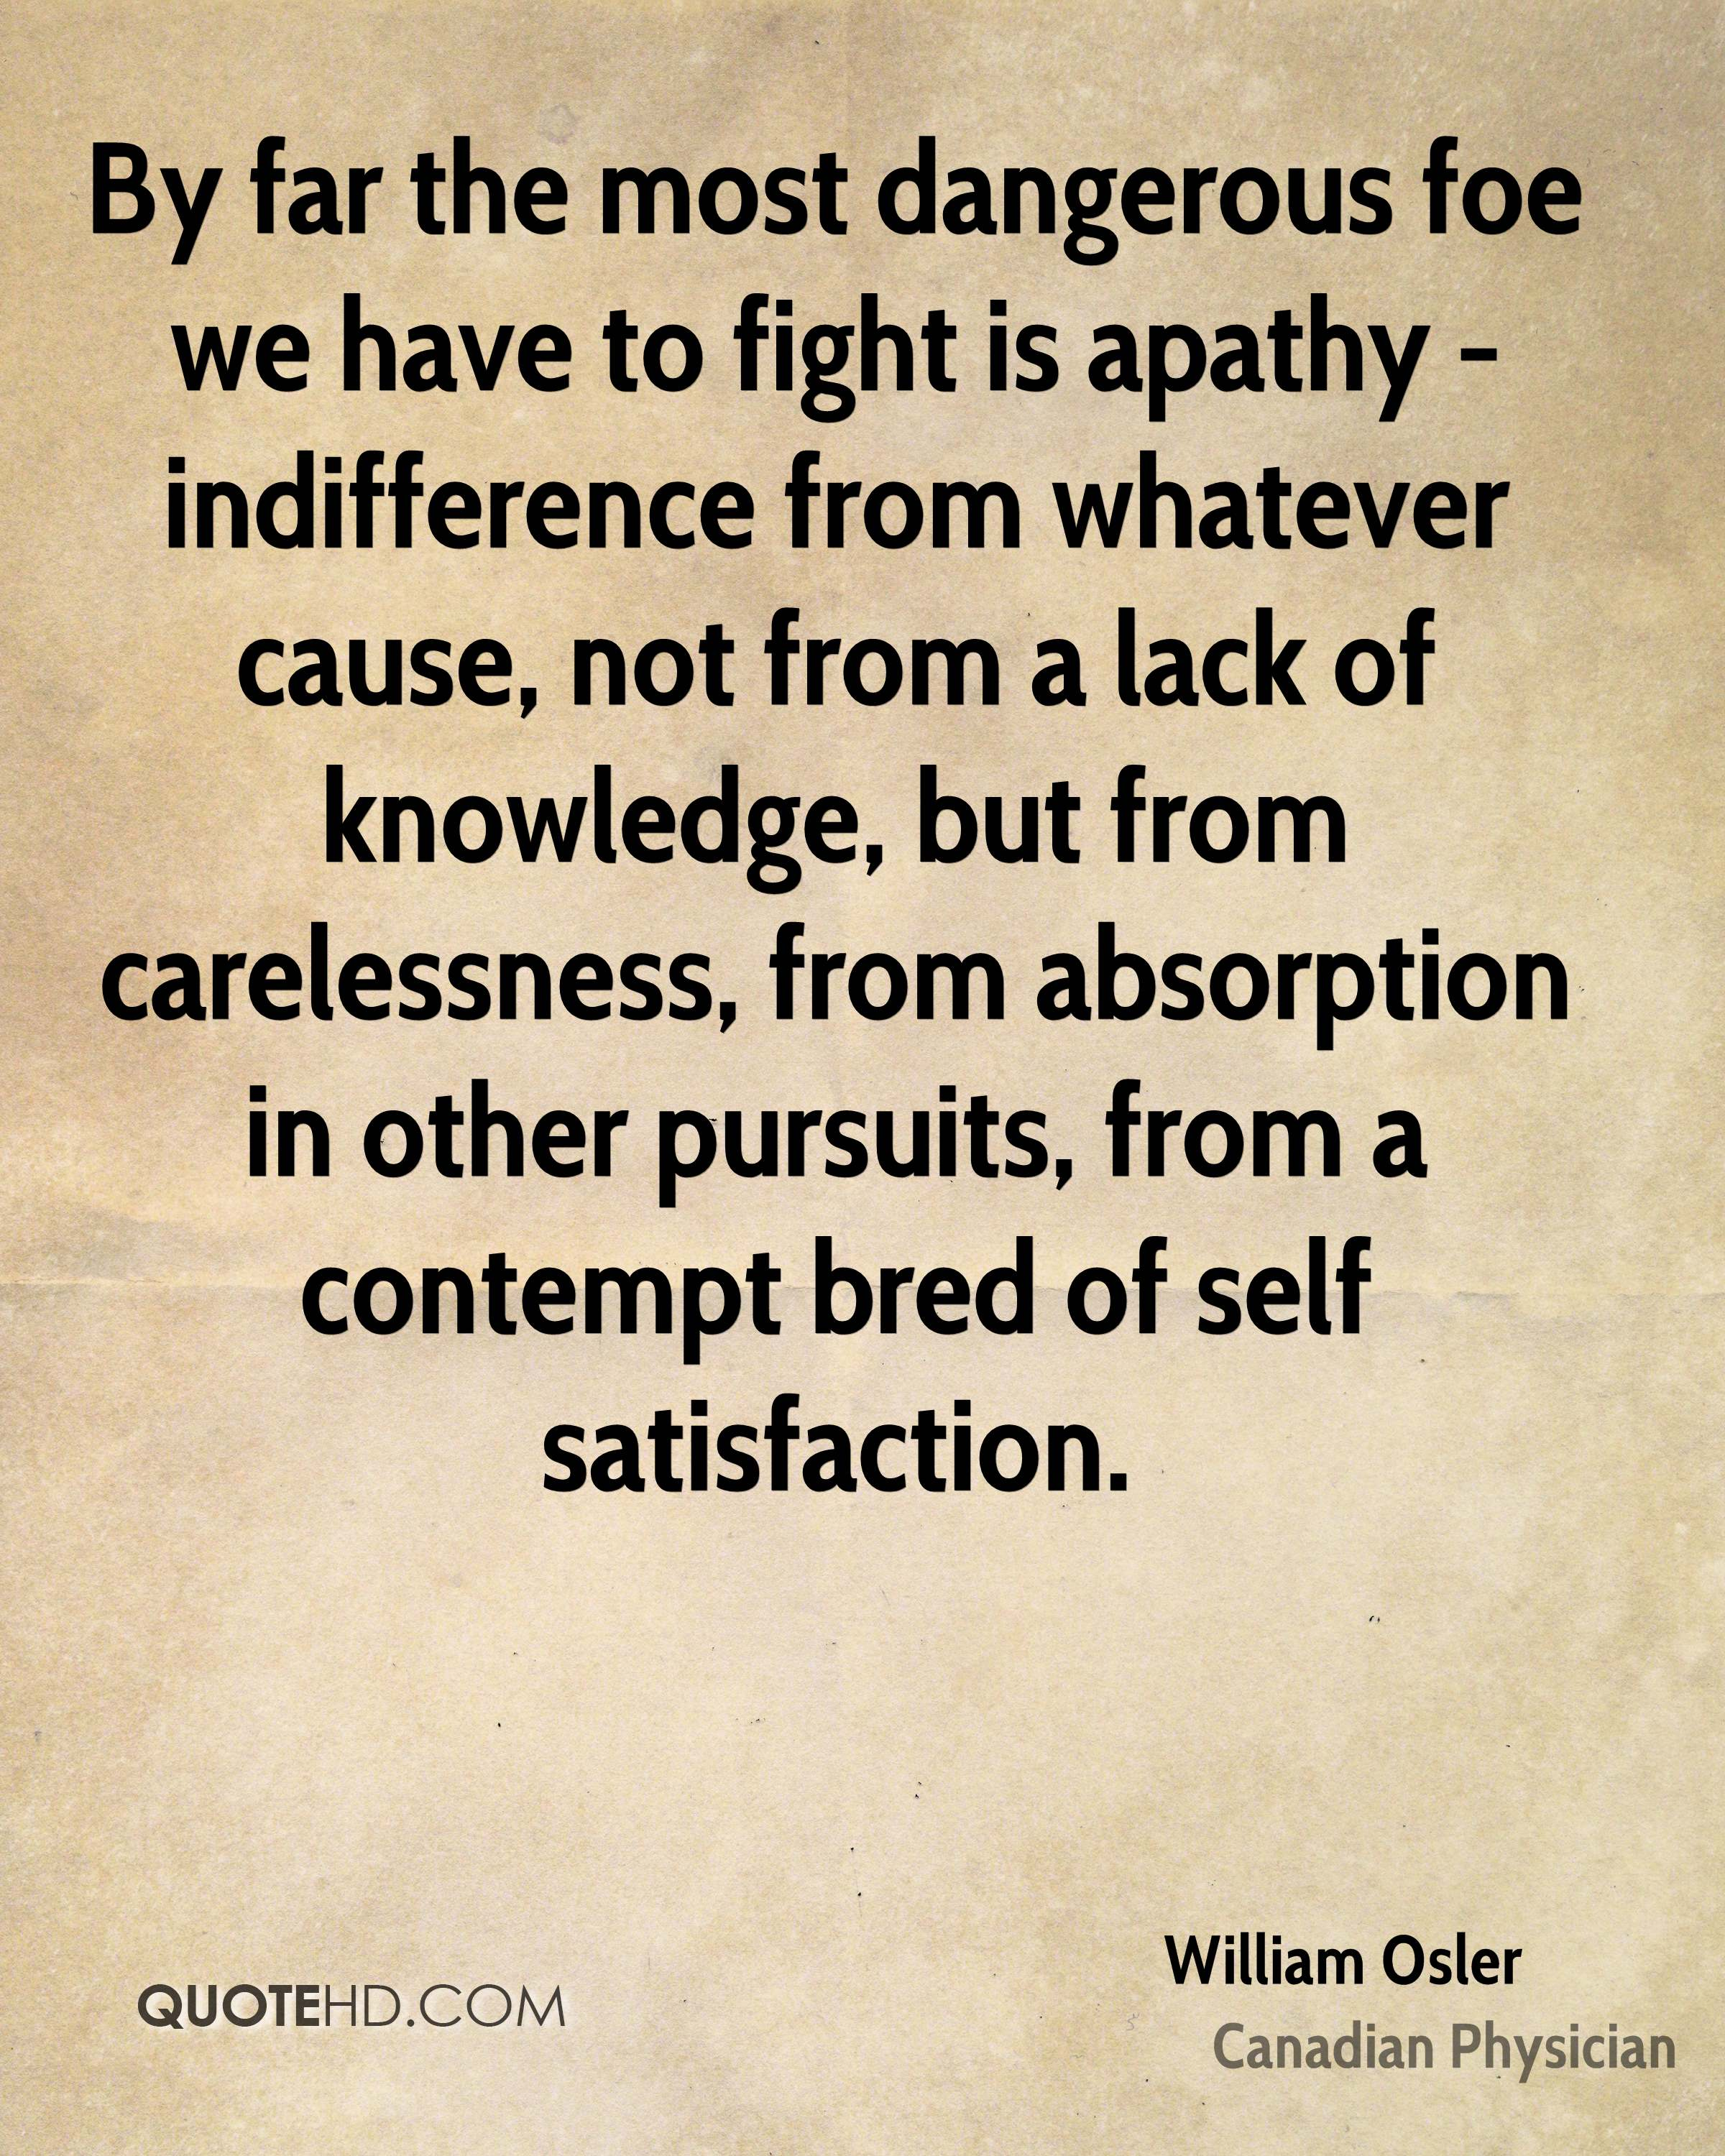 Indifference Quotes William Osler Quotes  Quotehd